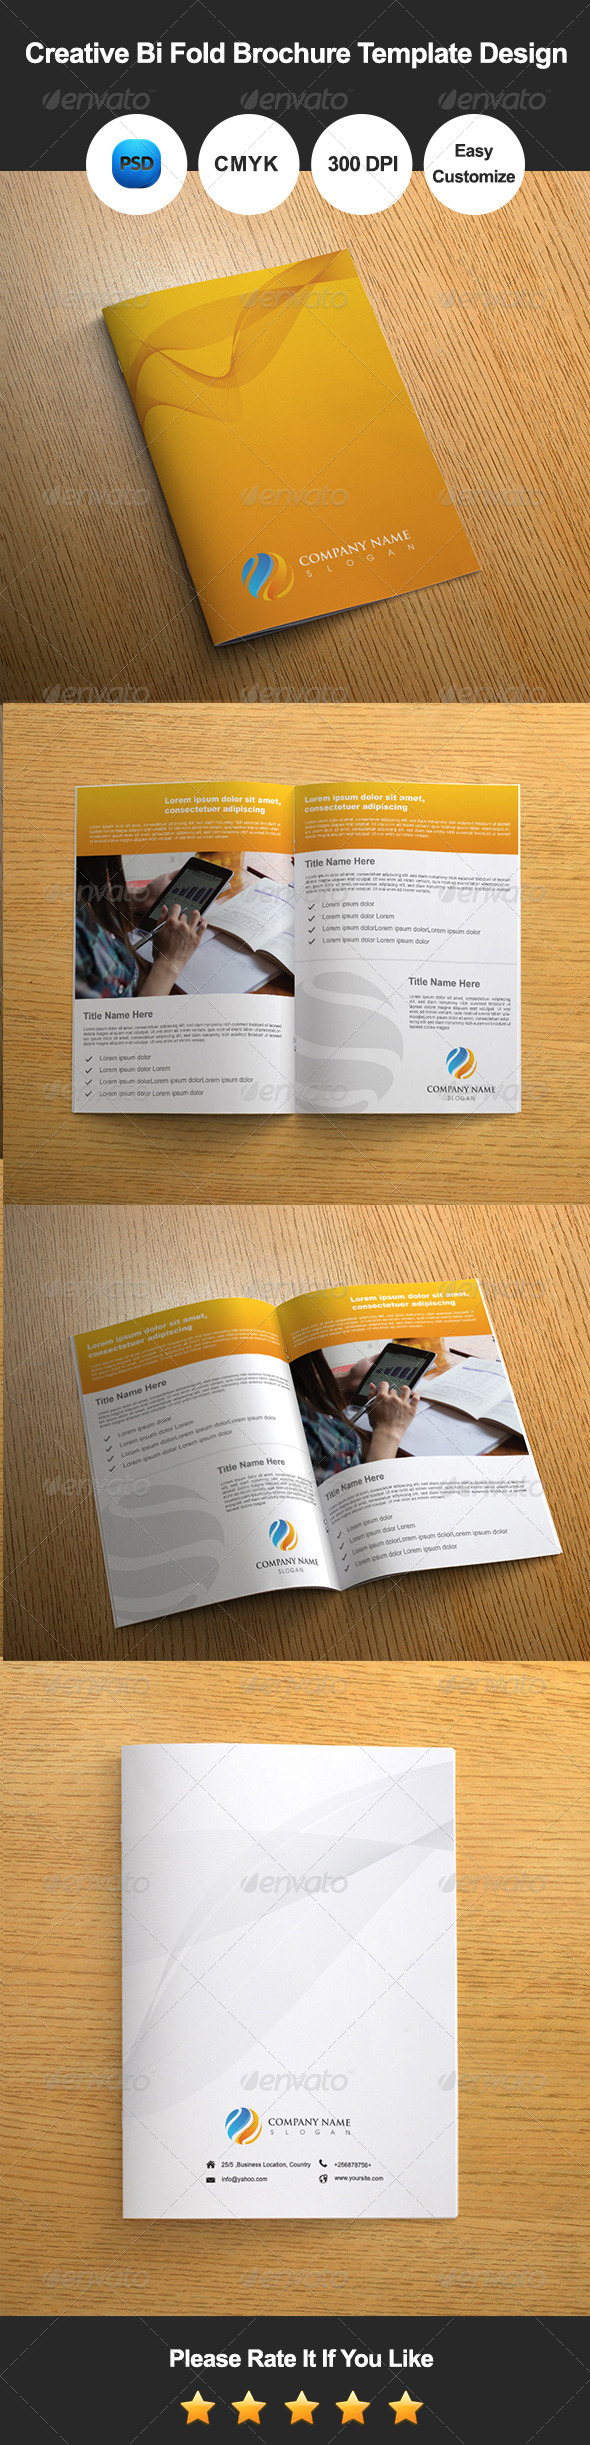 Creative bi fold brochure template design by for Corporate bi fold brochure template